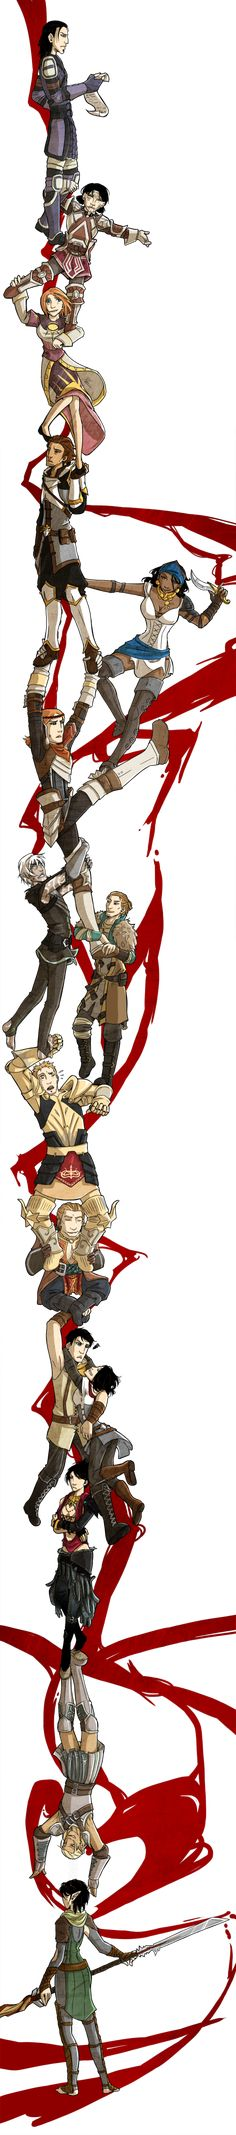 Durarara ED - Dragon Age style by =Cah3thel on deviantART. Beautiful!! **Ooh, sorry for the DA spam, I'll stop now...